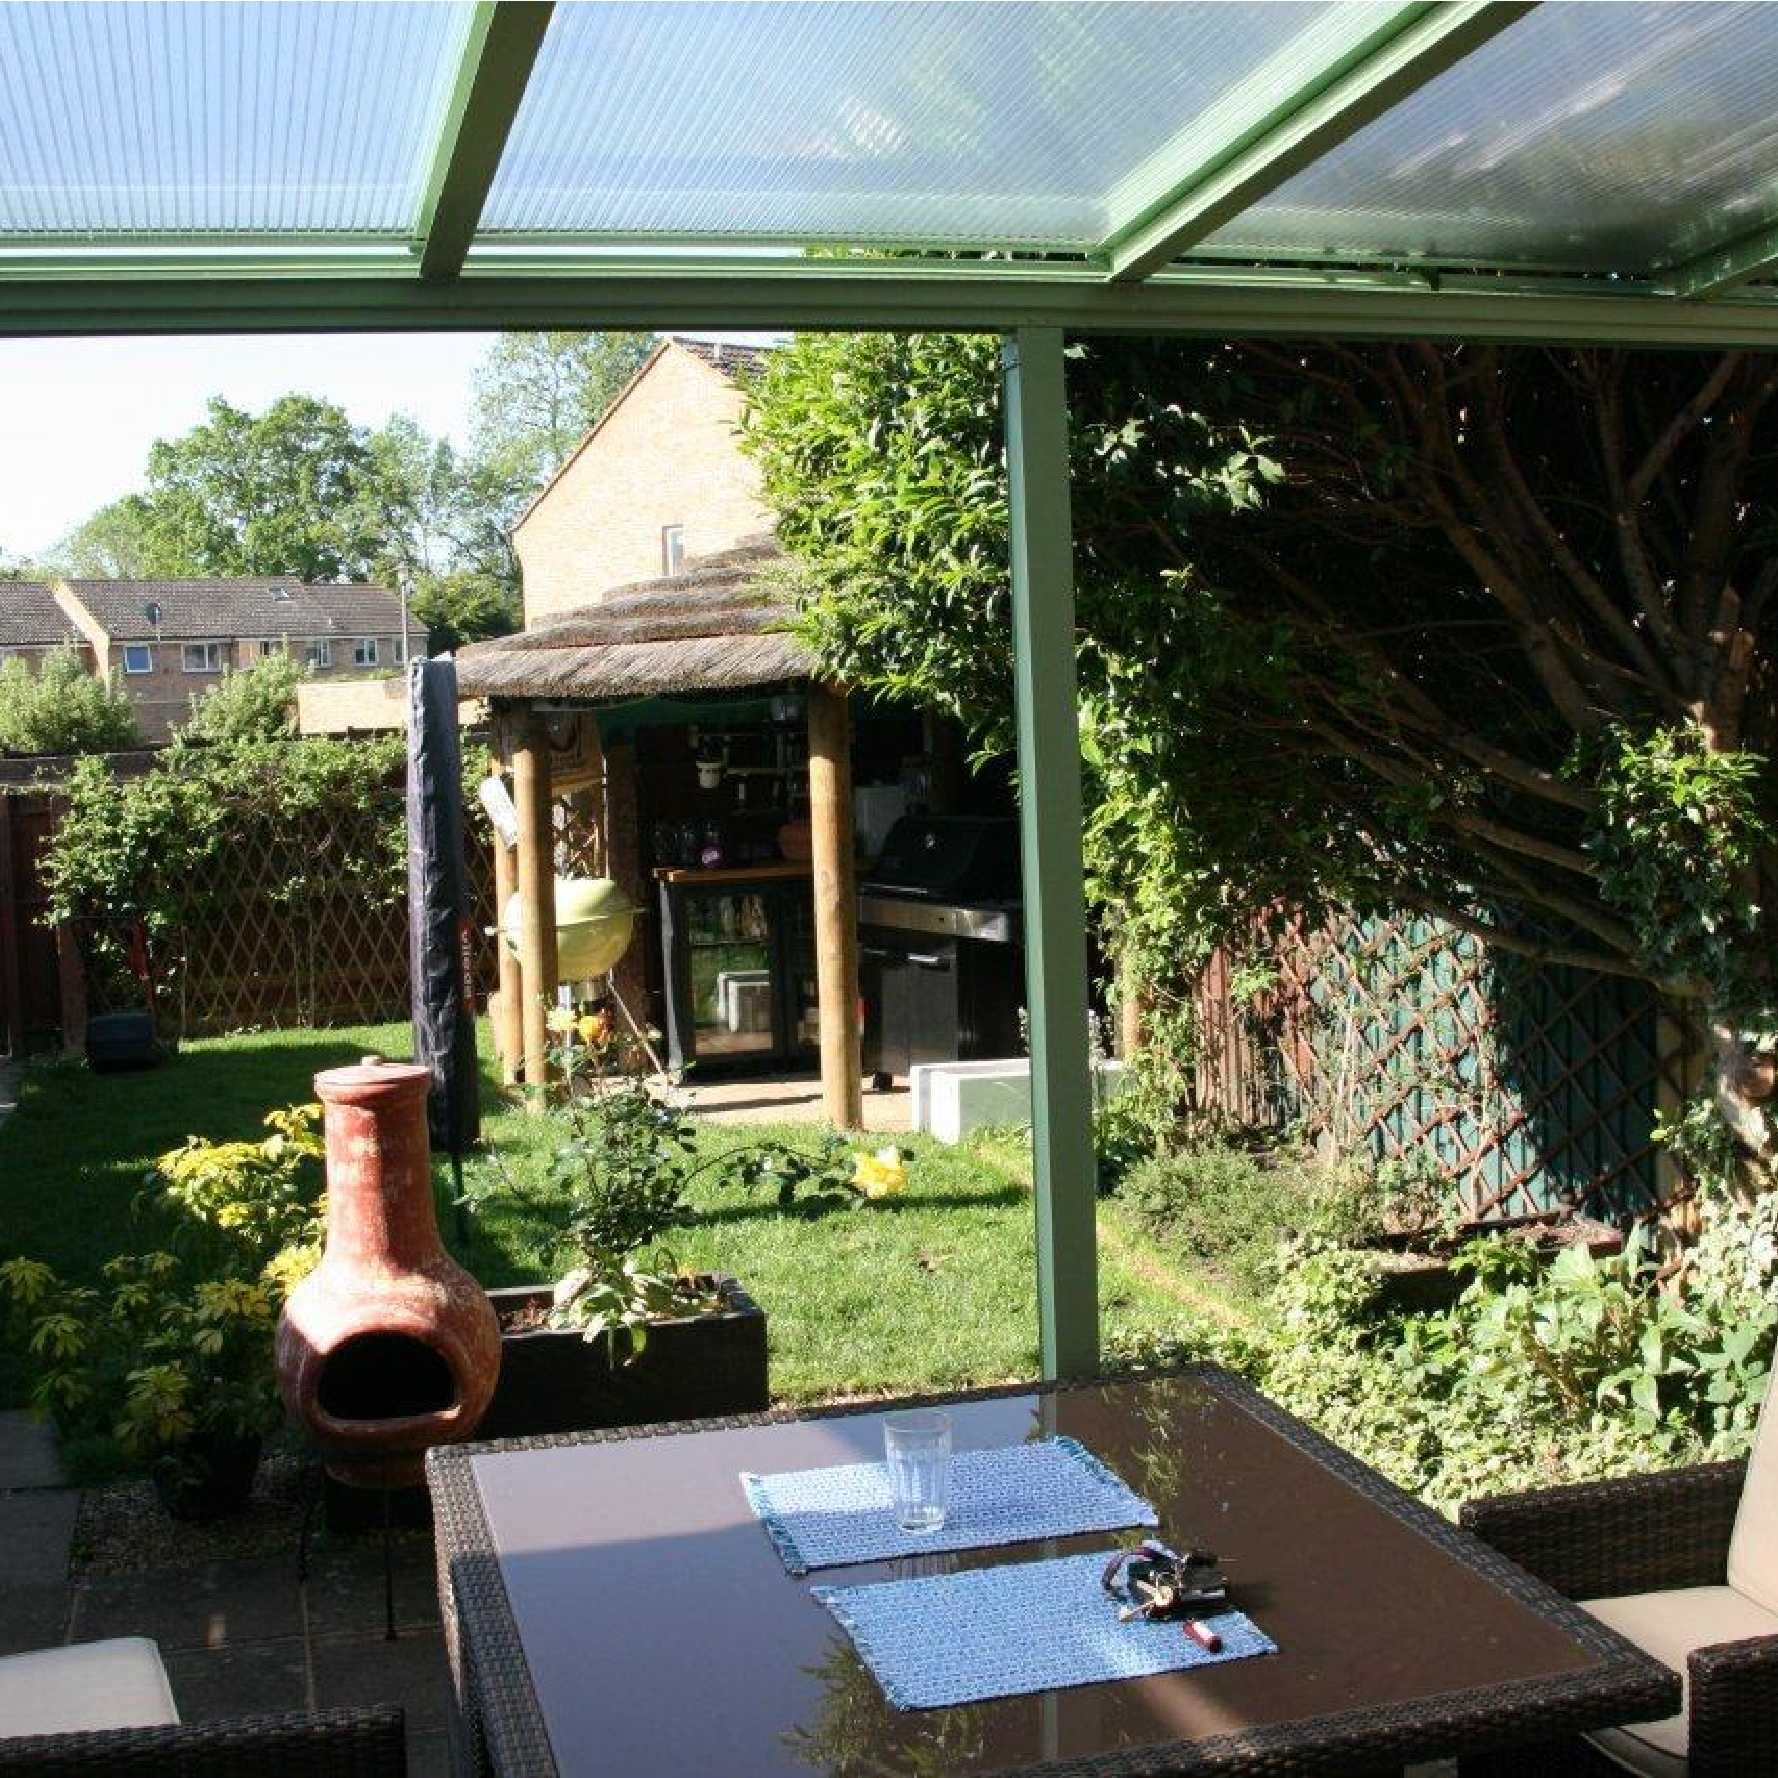 Affordable Omega Smart Lean-To Canopy with 16mm Polycarbonate Glazing - 3.5m (W) x 4.5m (P), (3) Supporting Posts